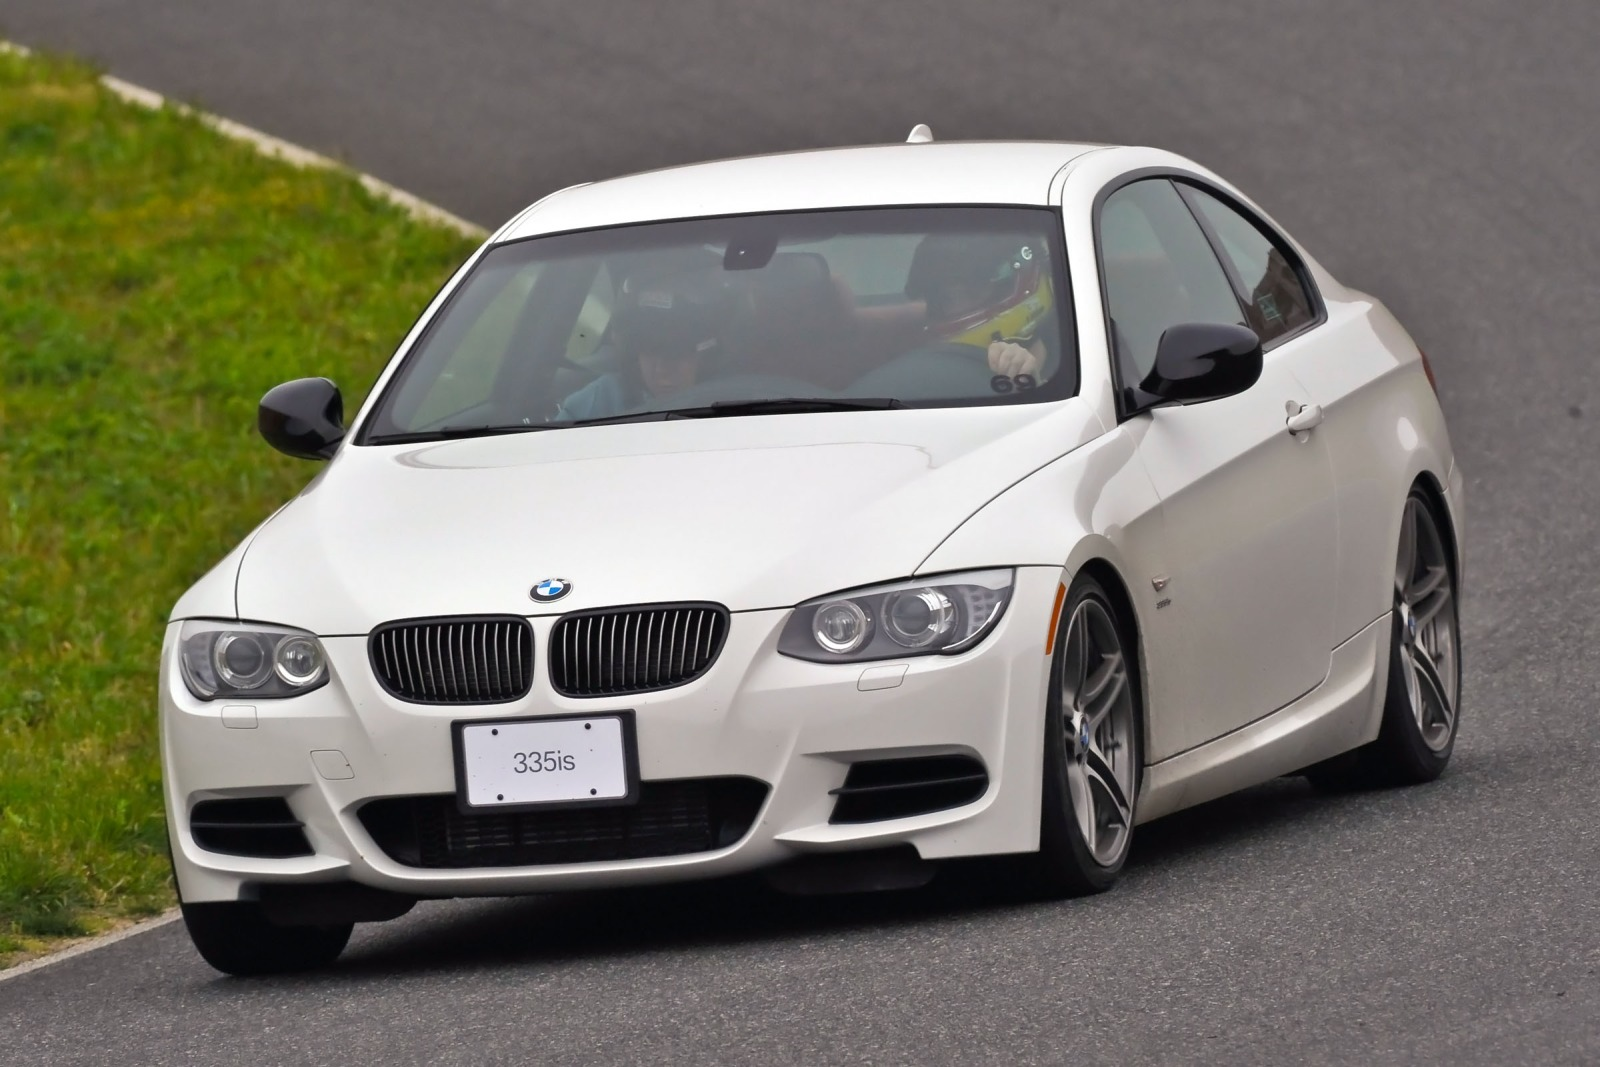 2012 Bmw 3 Series Image 2